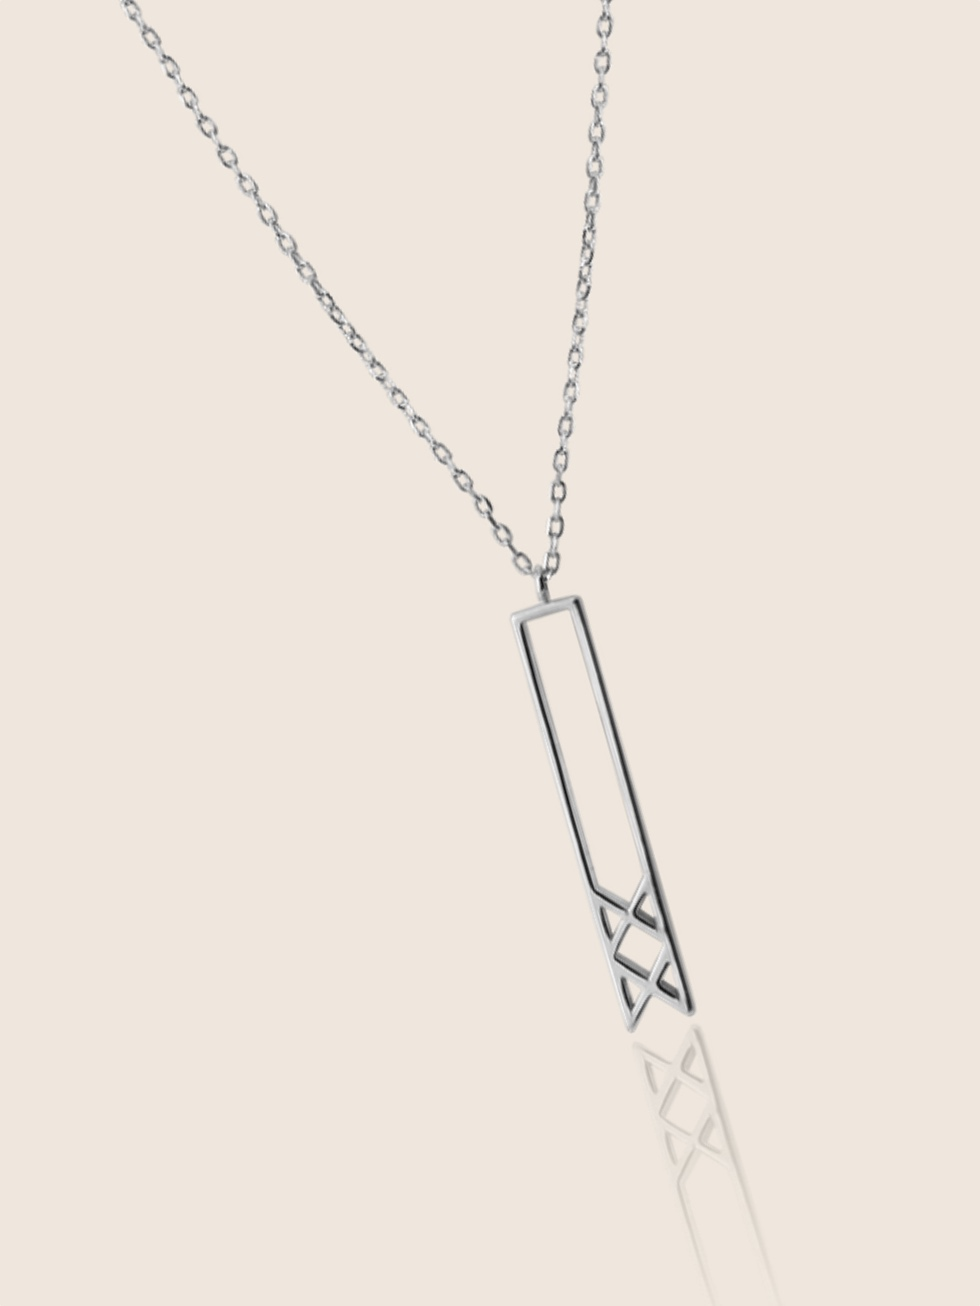 INGUZ silver necklace